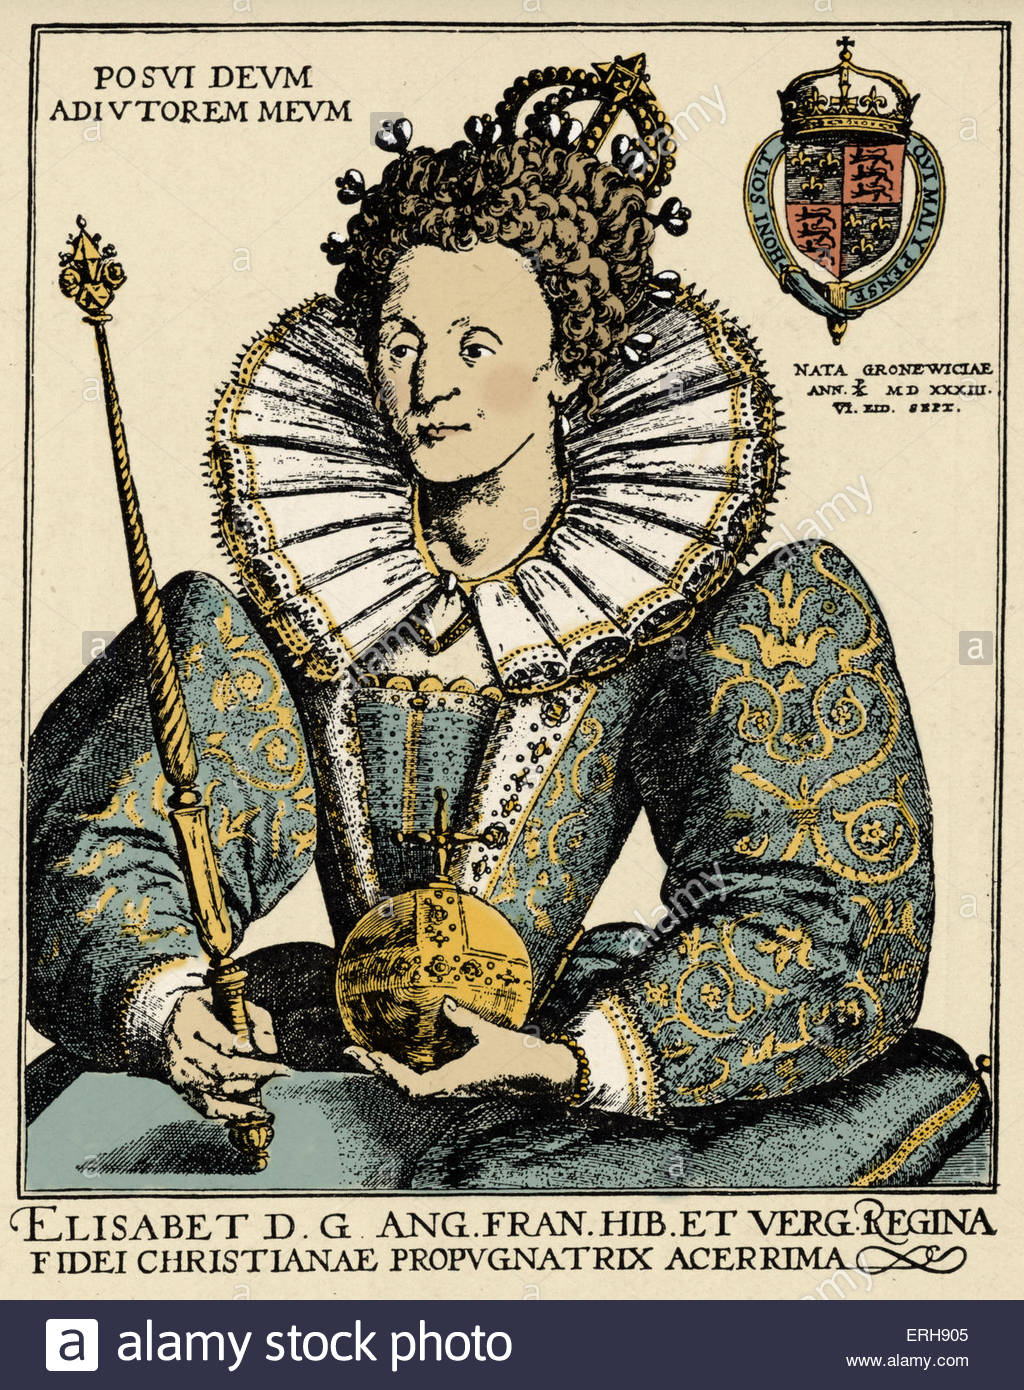 Queen Elizabeth I - portrait from an engraving by Crispin de Passe, 1592 - Queen of England and Ireland, 17 November - Stock Image